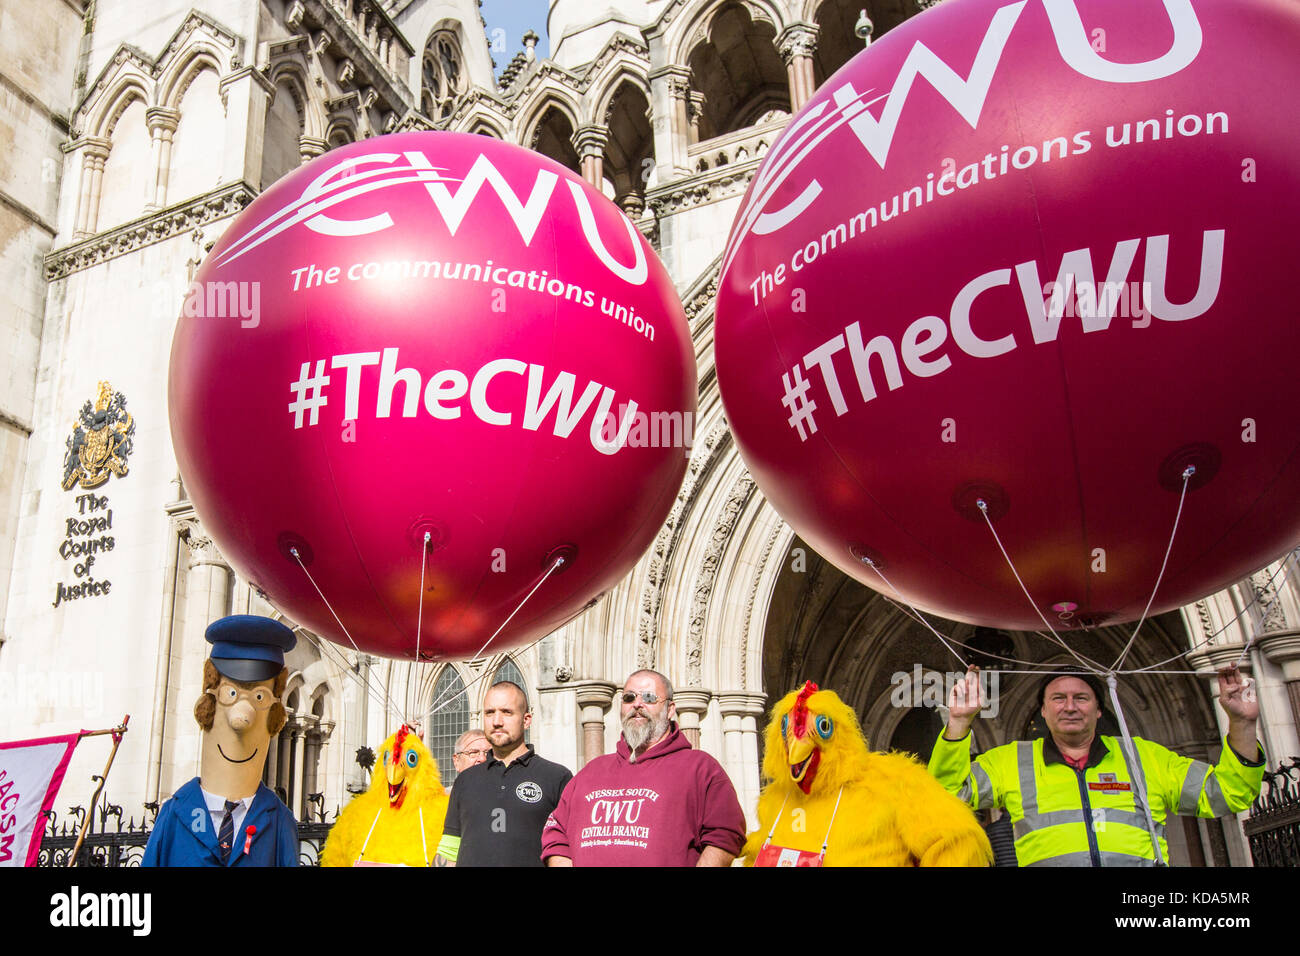 London, UK. 12 October 2017. Members of the Communications Workers Union protesting at the Royal Courts of Justice - Stock Image